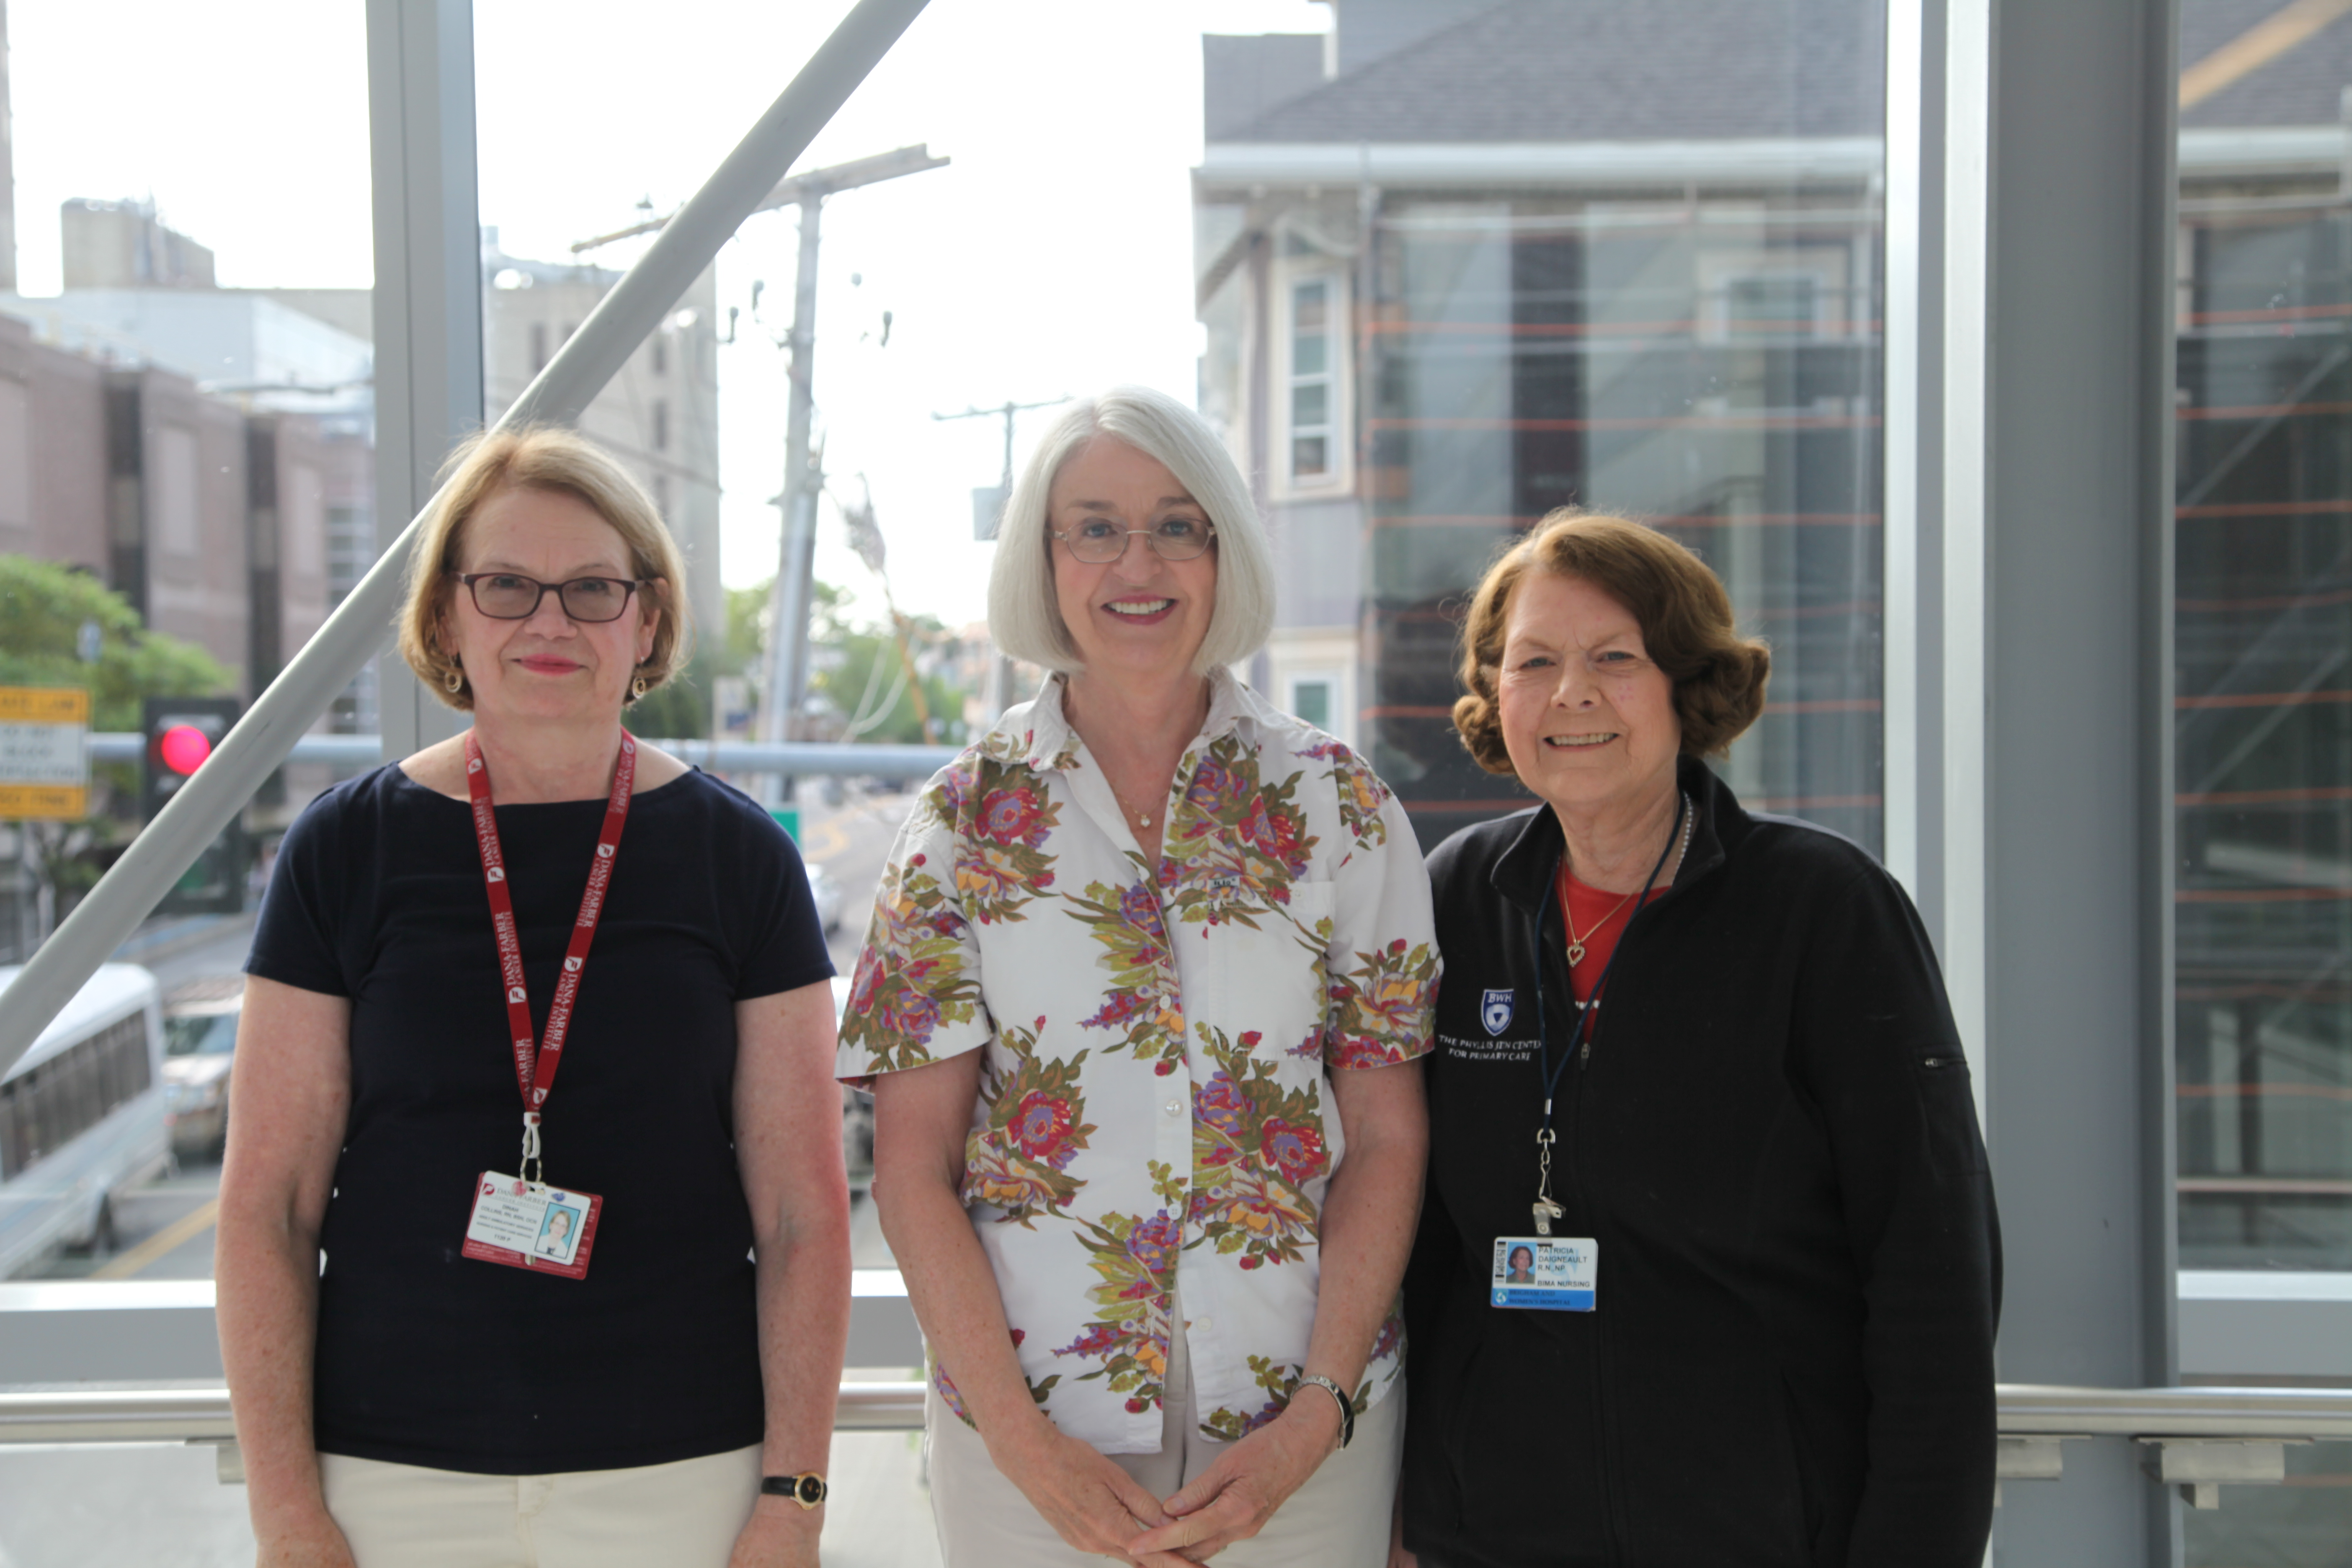 From left: Dinah Collins, RN, Margaret Mills and Patricia Daigneault, NP